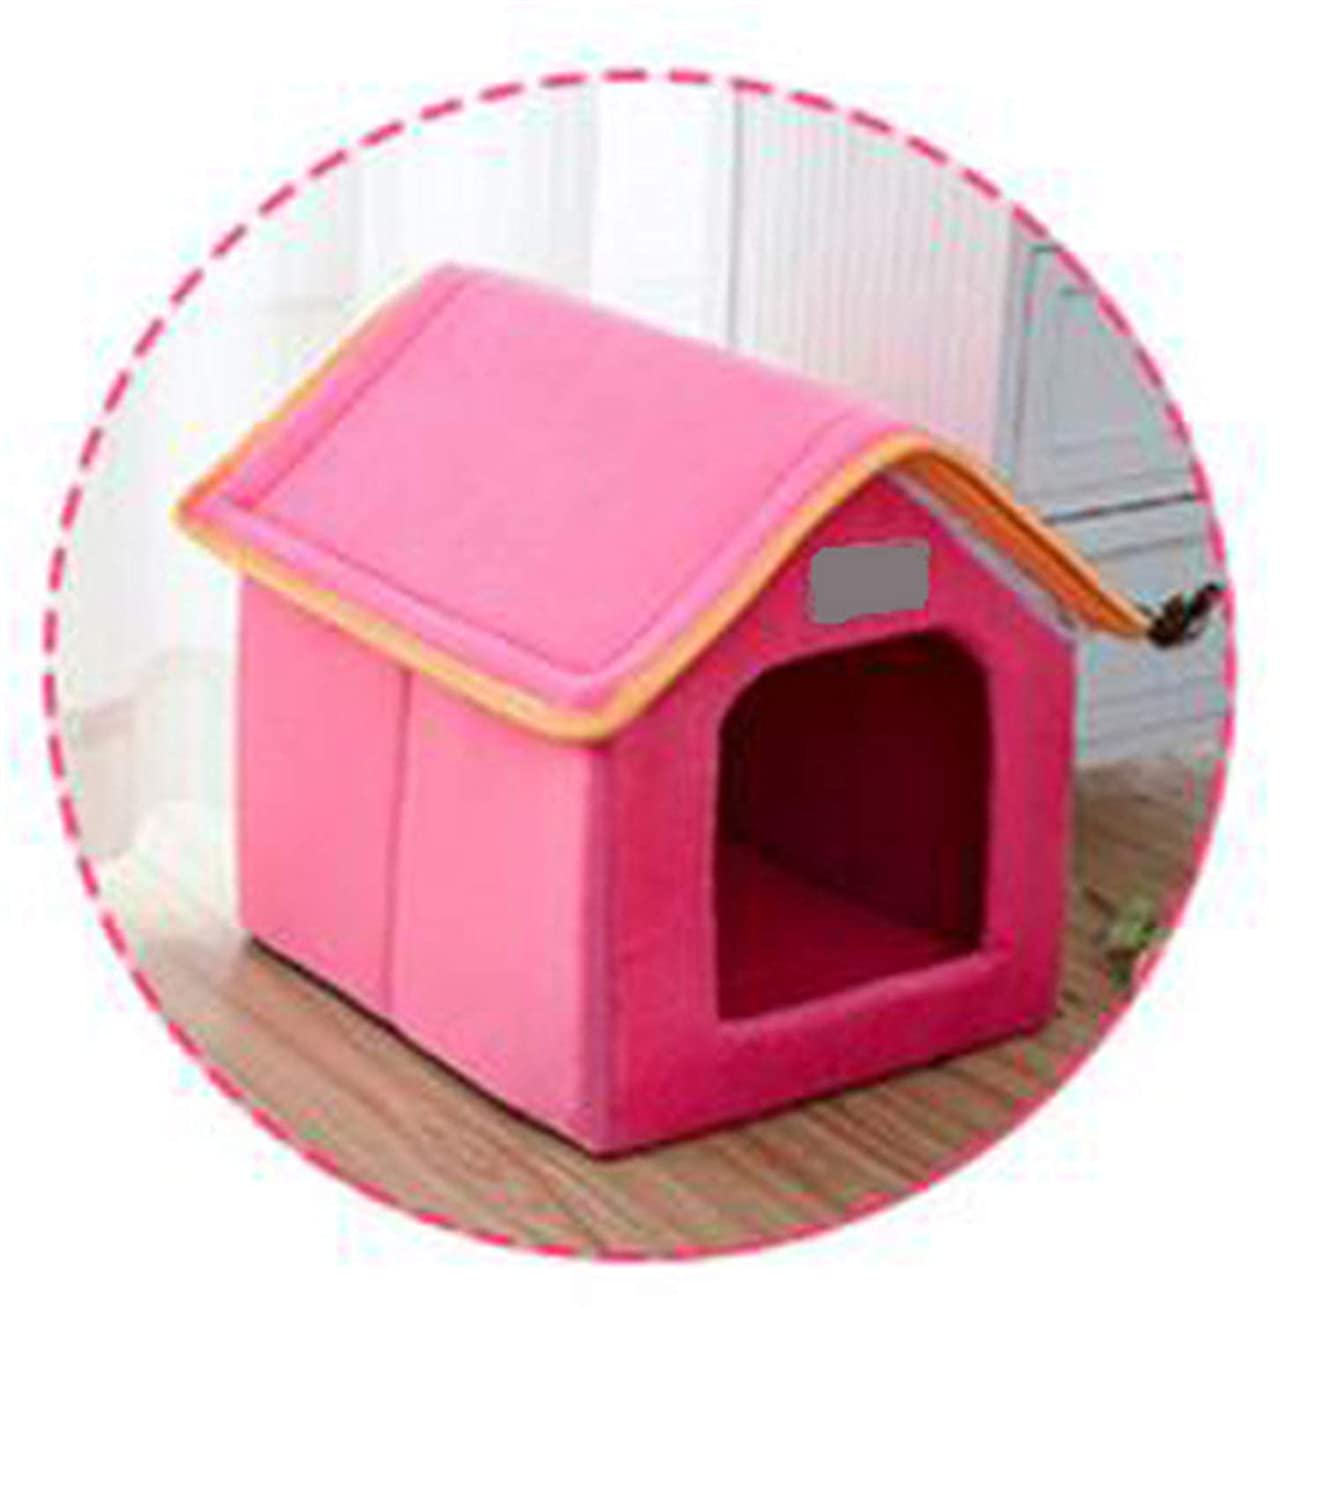 Pink 61cmx47cmx45cm pink 61cmx47cmx45cm Pet House Foldable Bed with Mat Soft Spring Leopard Dog Puppy Sofa Cushion House Kennel Nest Dog Cat Bed for Small Medium Dogs